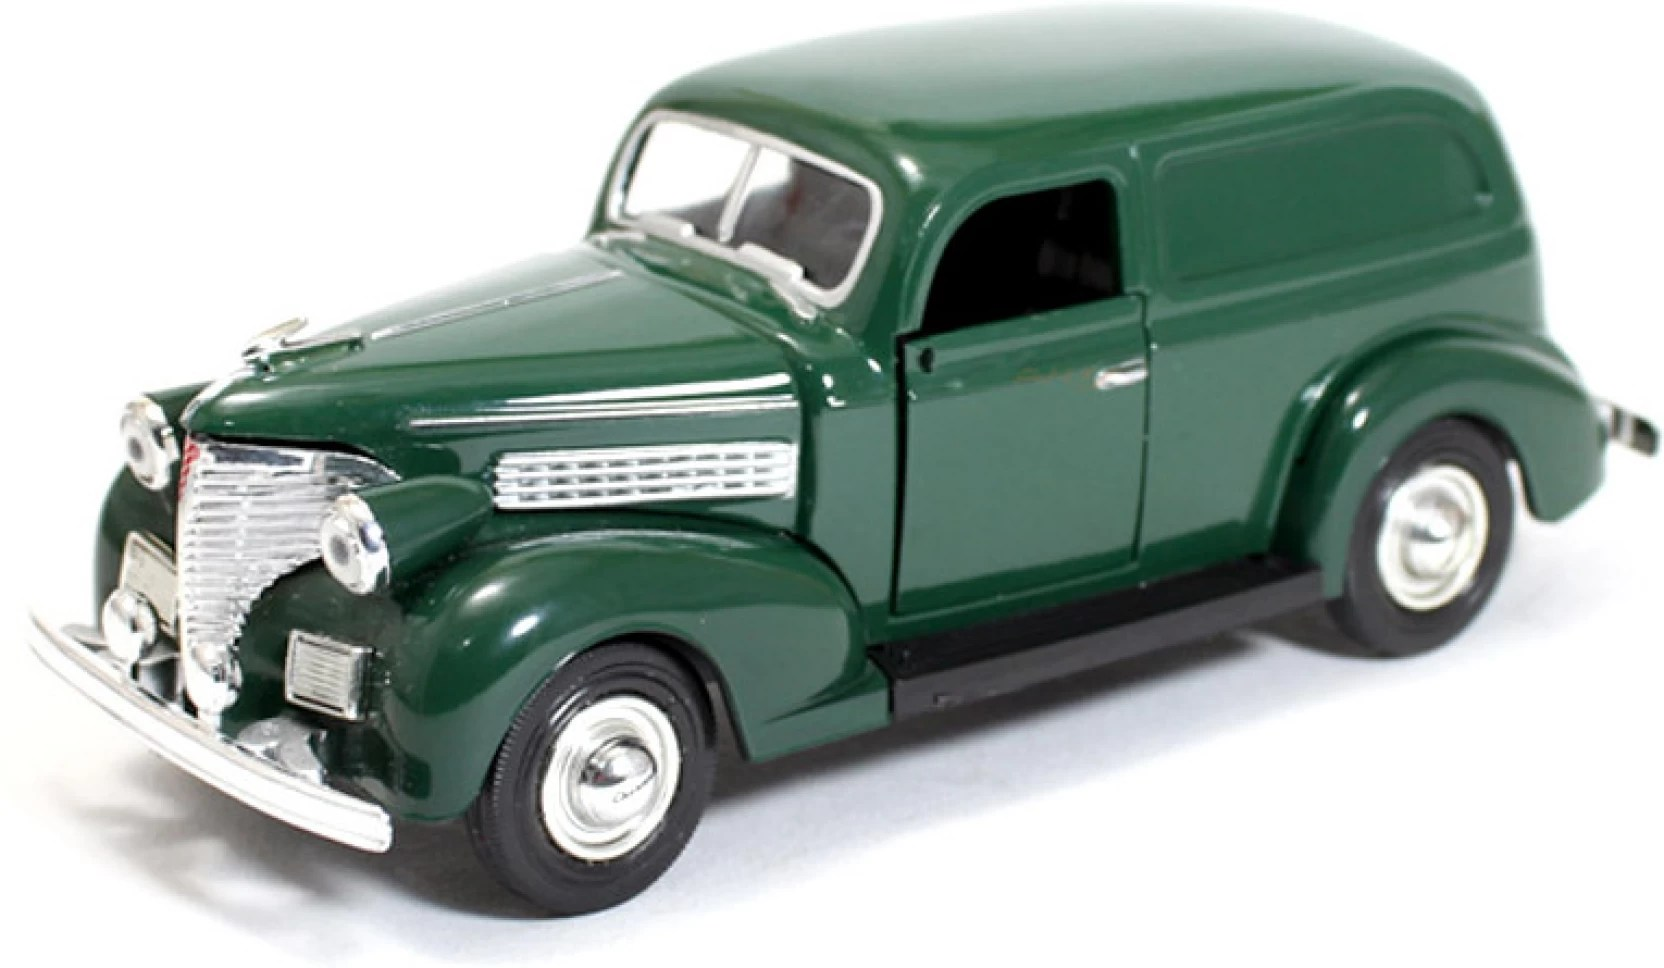 new ray 1939 chevy sedan delivery 1 32 by diecast scale model green  [ 1664 x 968 Pixel ]